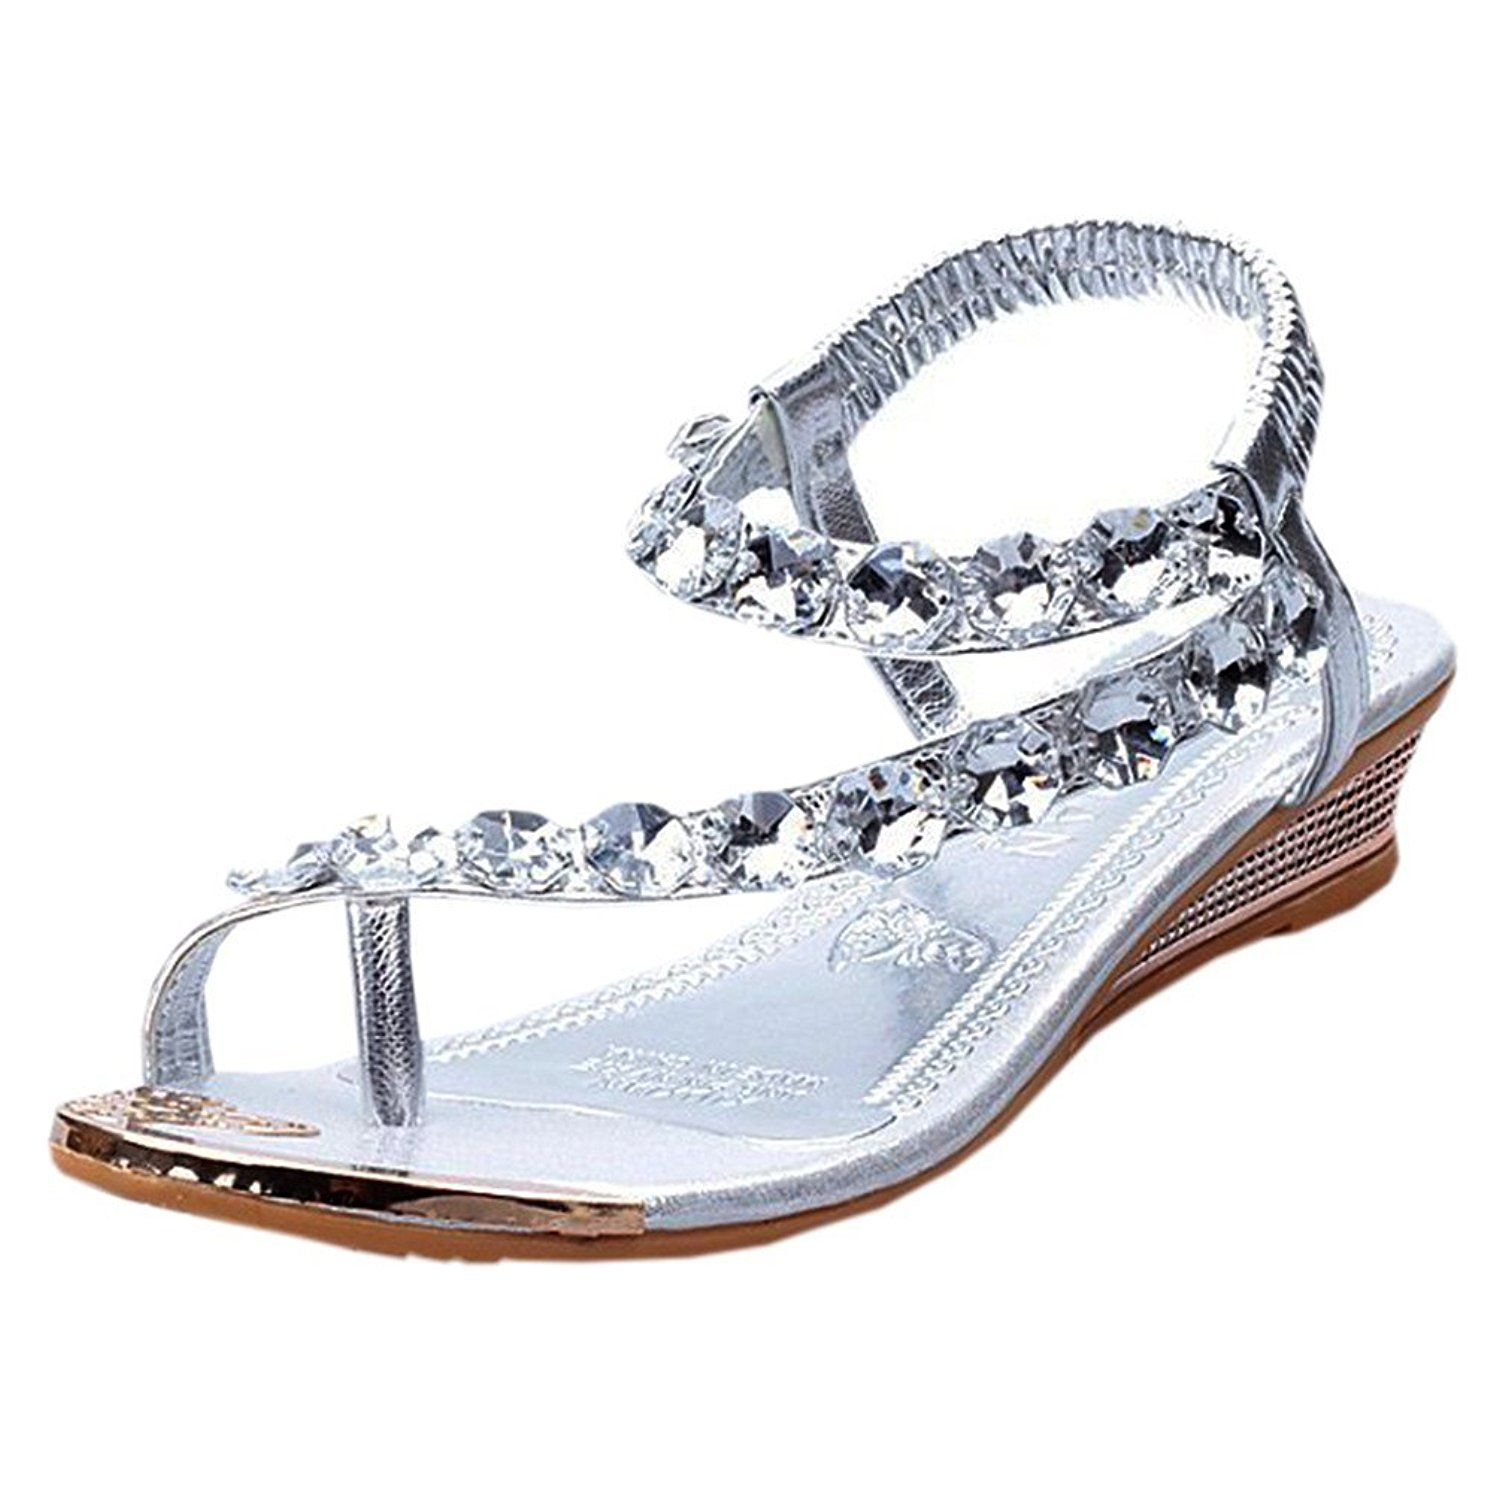 Women's sandals with bling - Theplus Womens Fashion Rhinestone String Flip Flops Wedge Sandals Casual Shoes Details Can Be Found